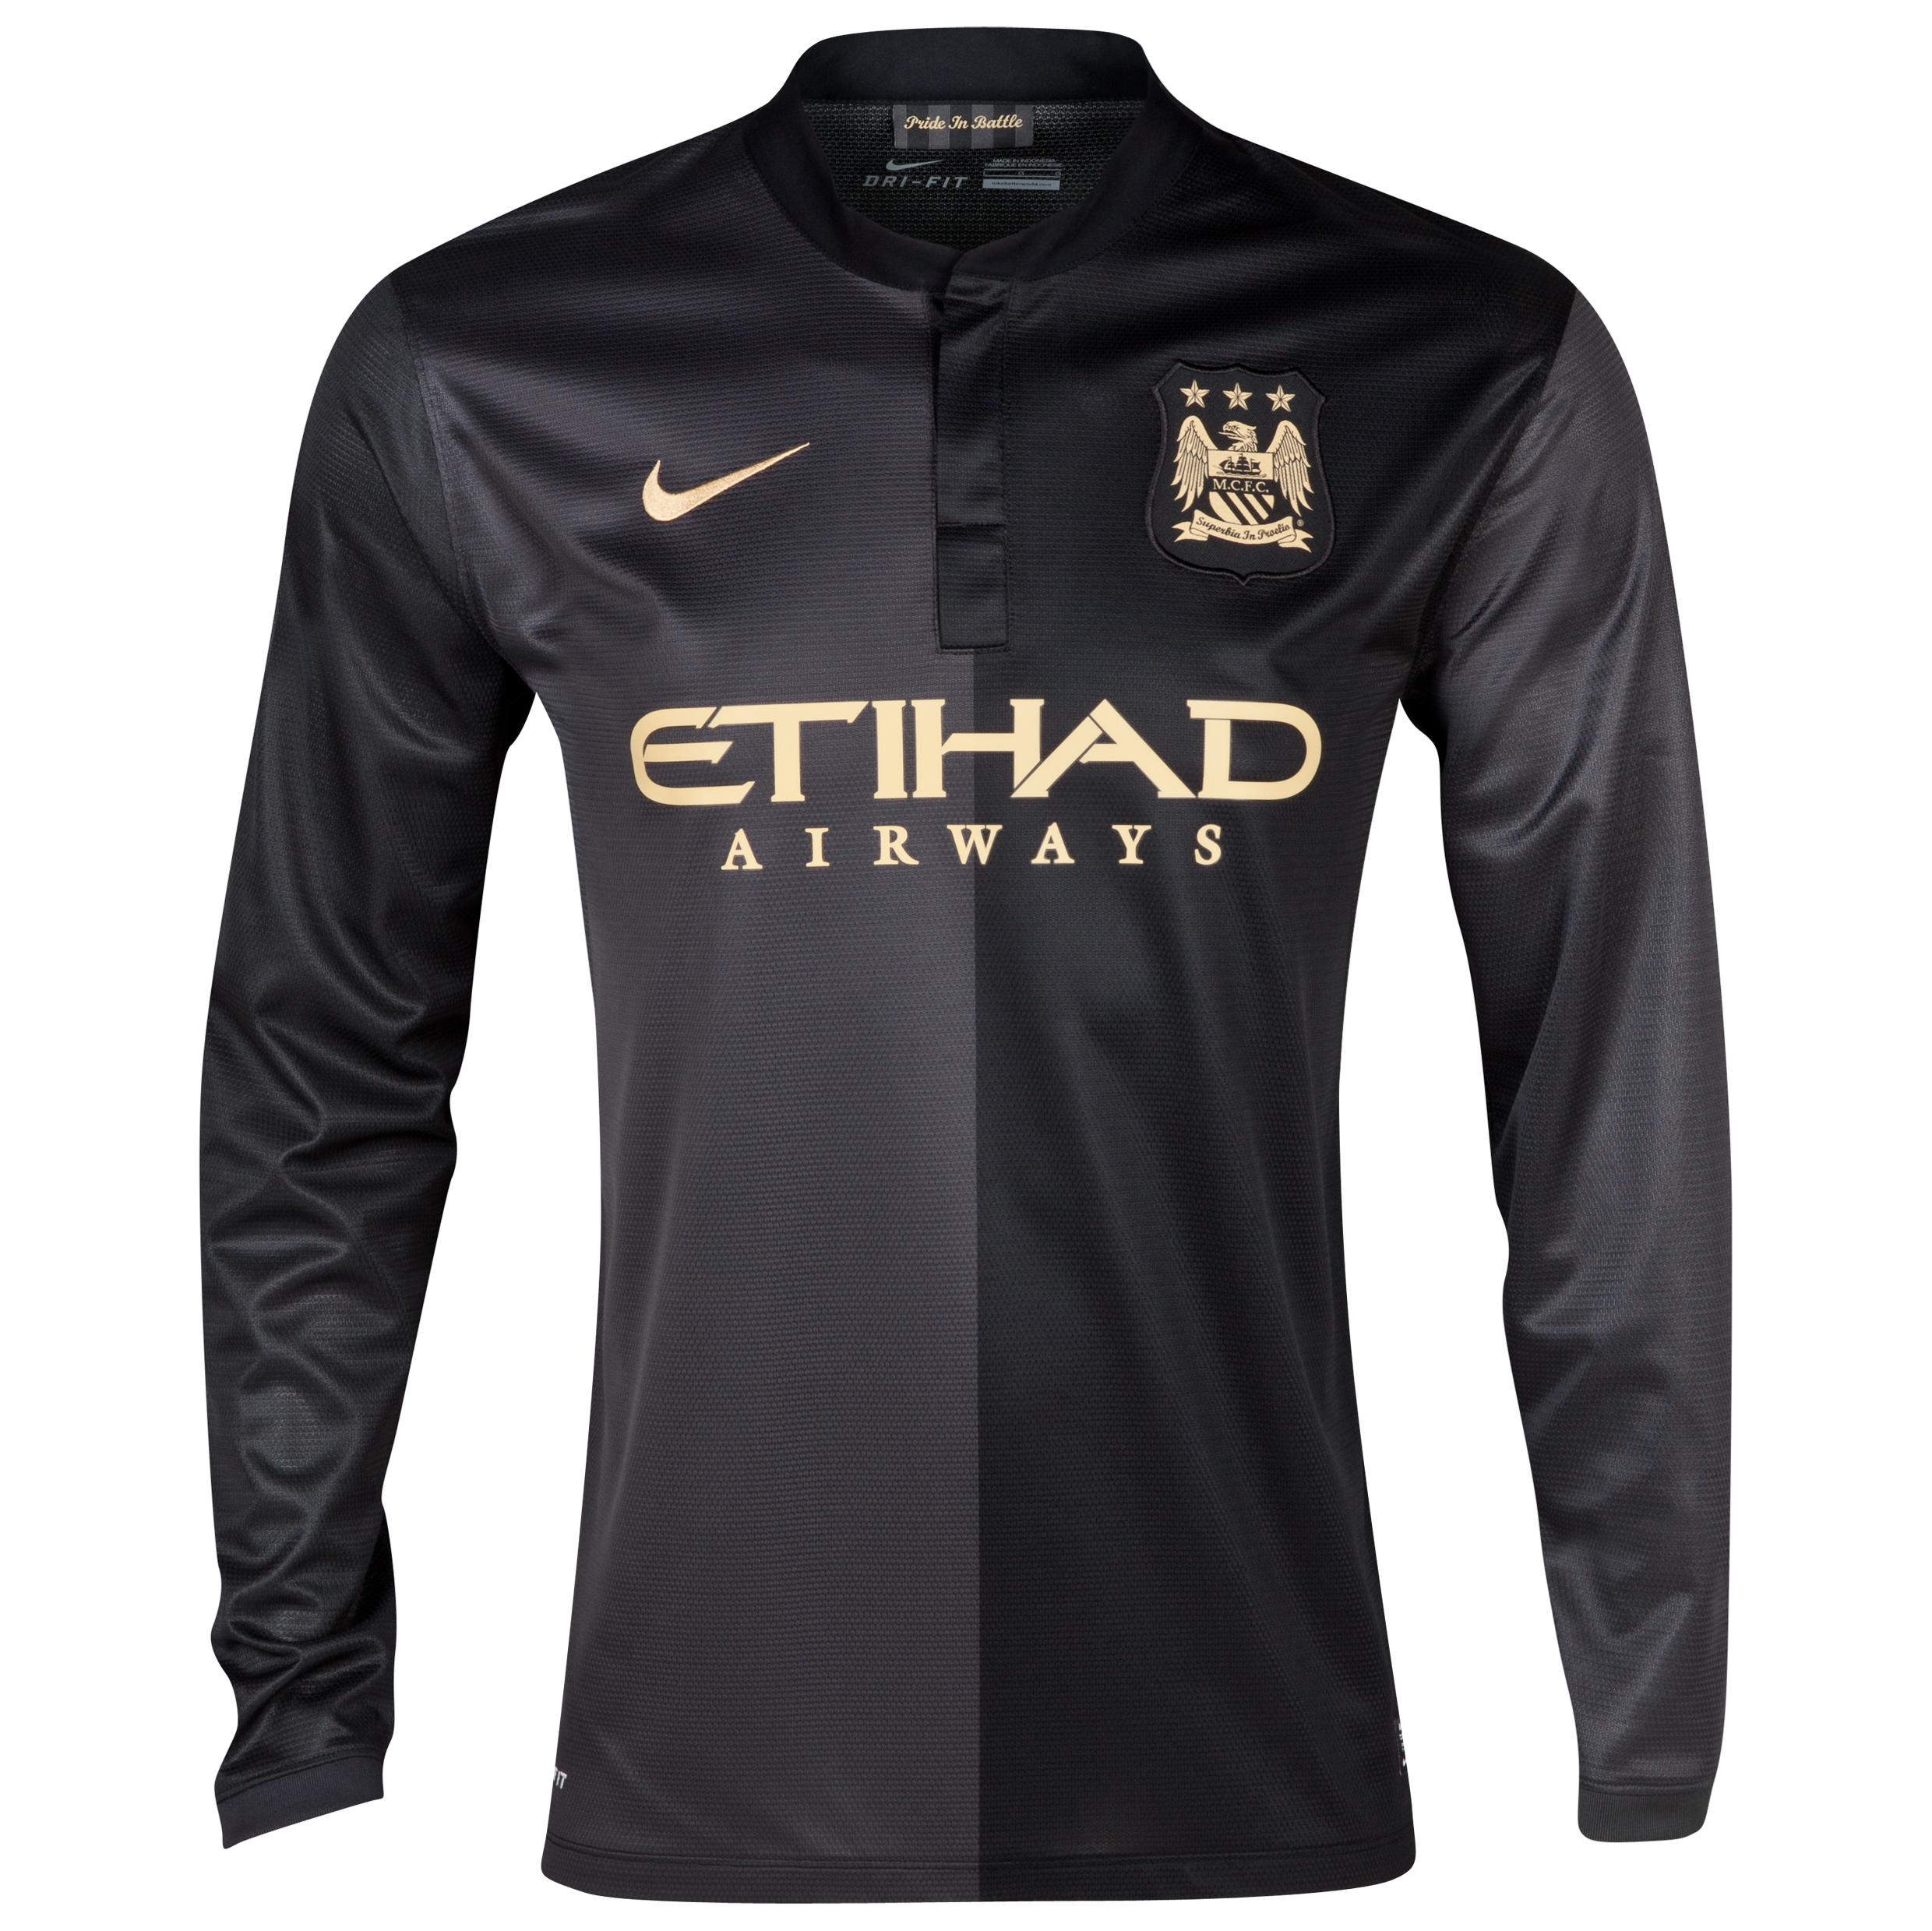 Manchester City Away Shirt 2013/14 - Long Sleeved